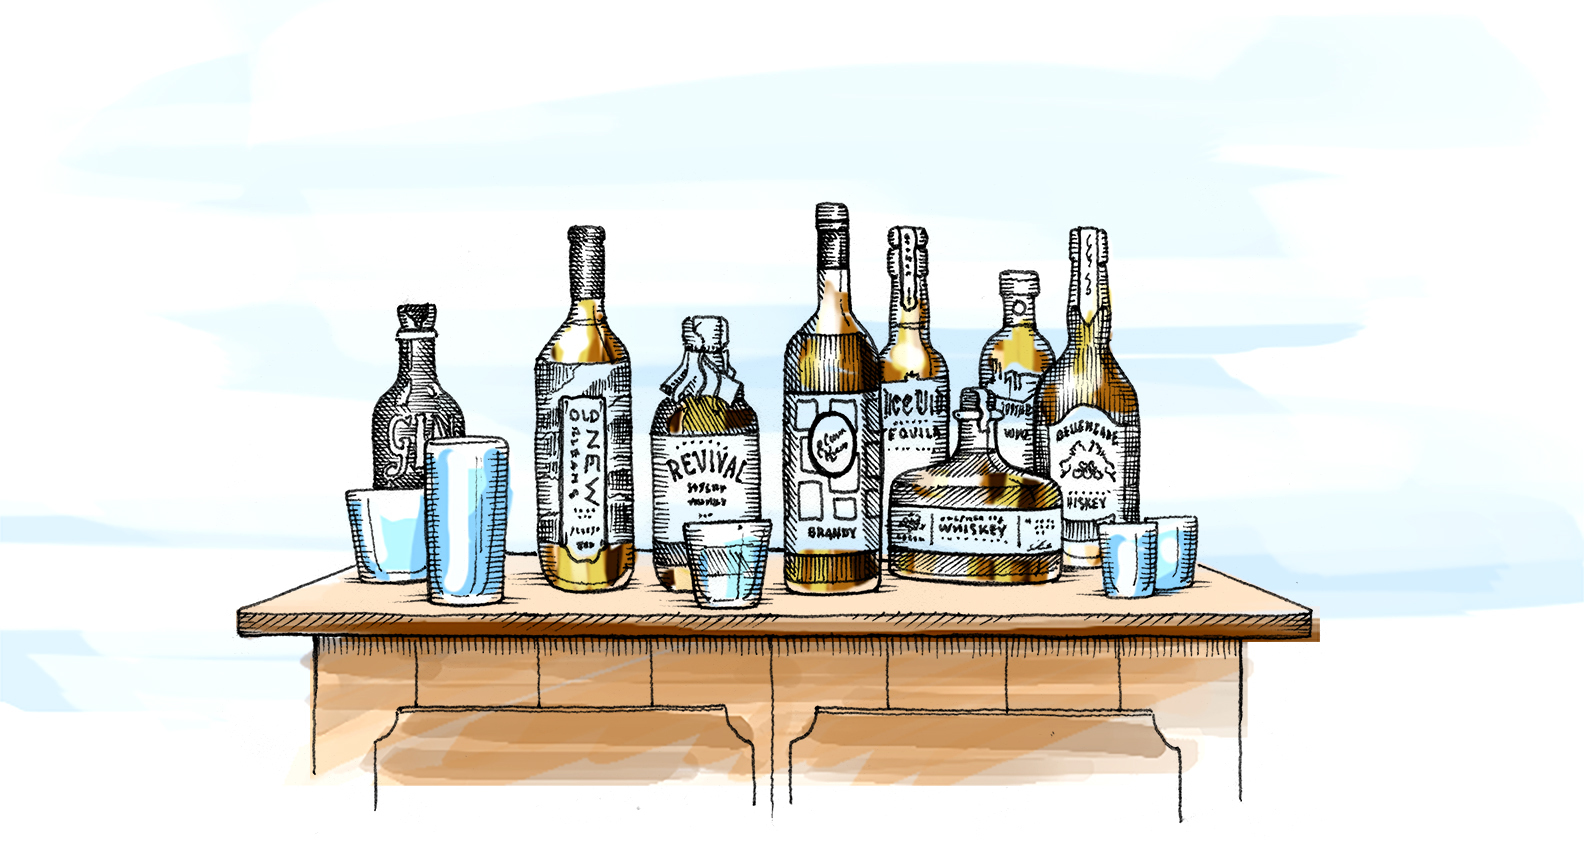 Stocking the ideal Southern bar | Southern Kitchen